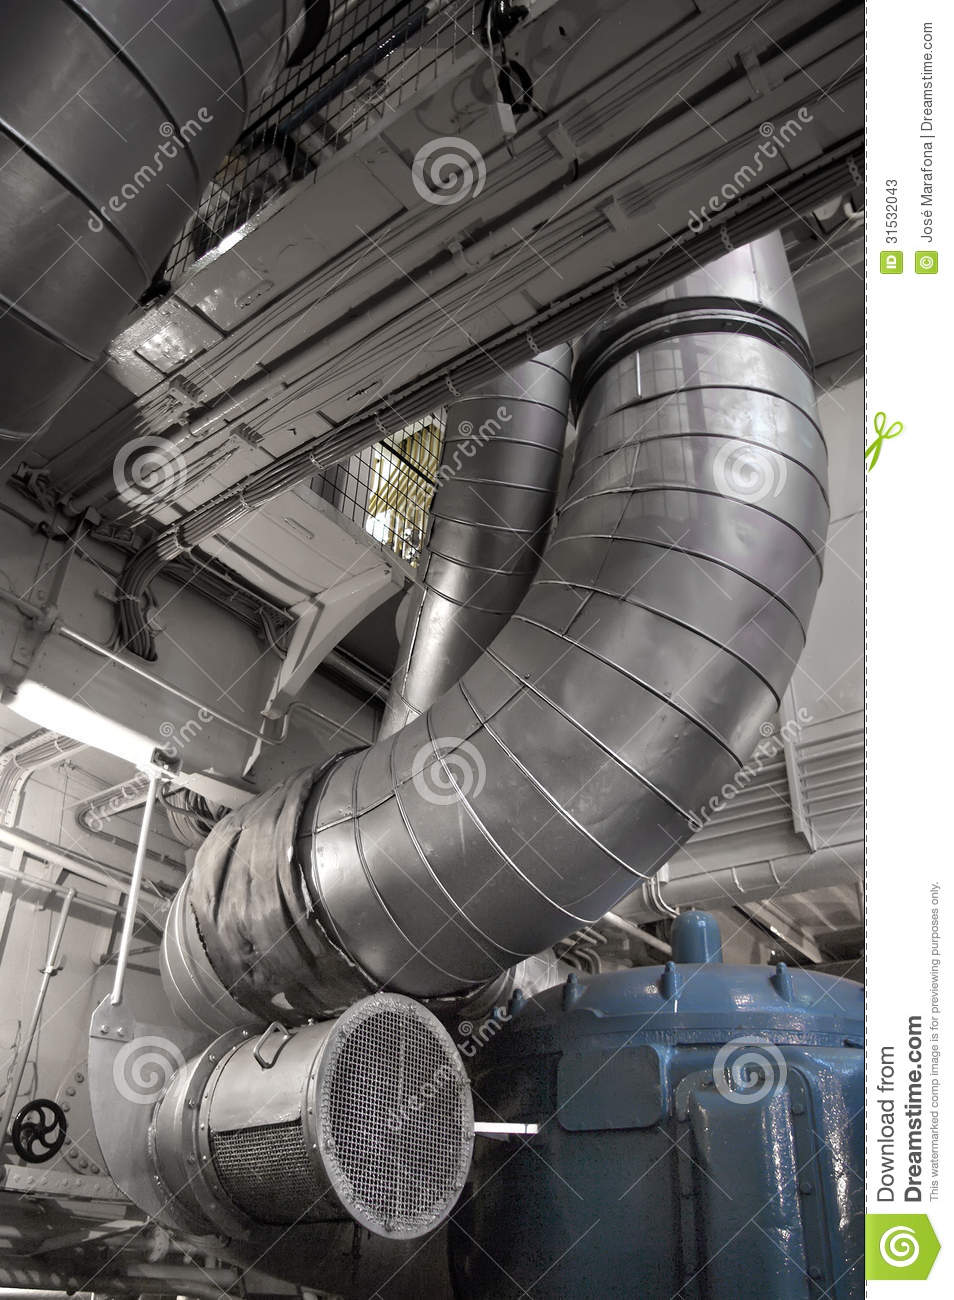 Spaceship Engine Room: Ducts Stock Photos